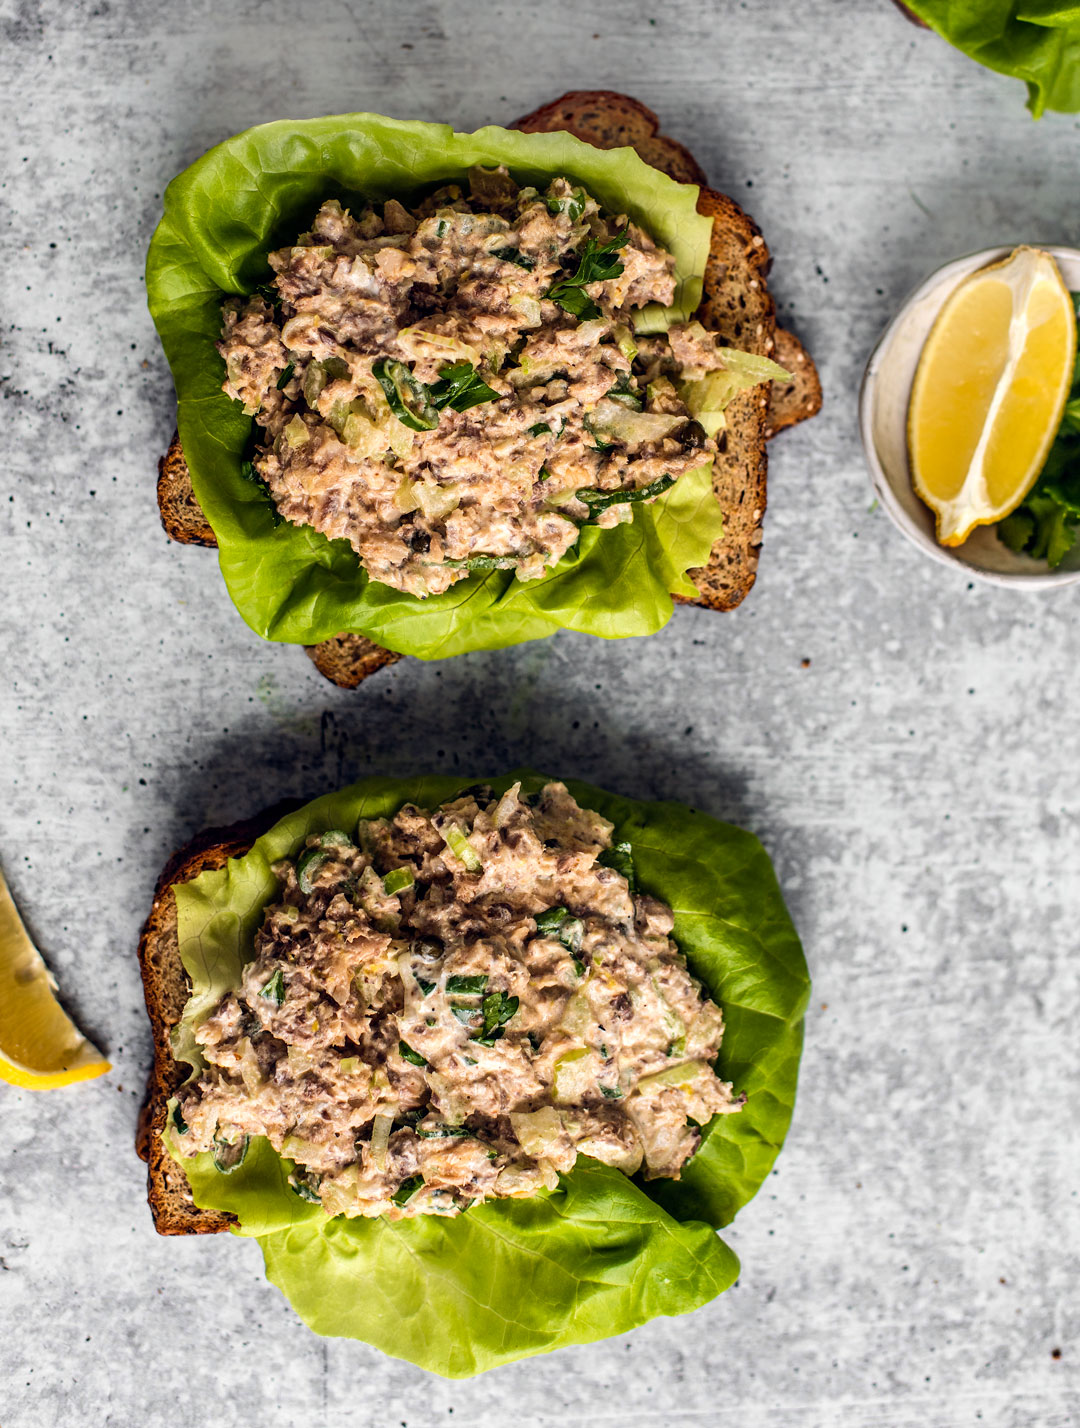 Toasted whole grain bread topped with bibb lettuce and spicy sardine salad mixture.